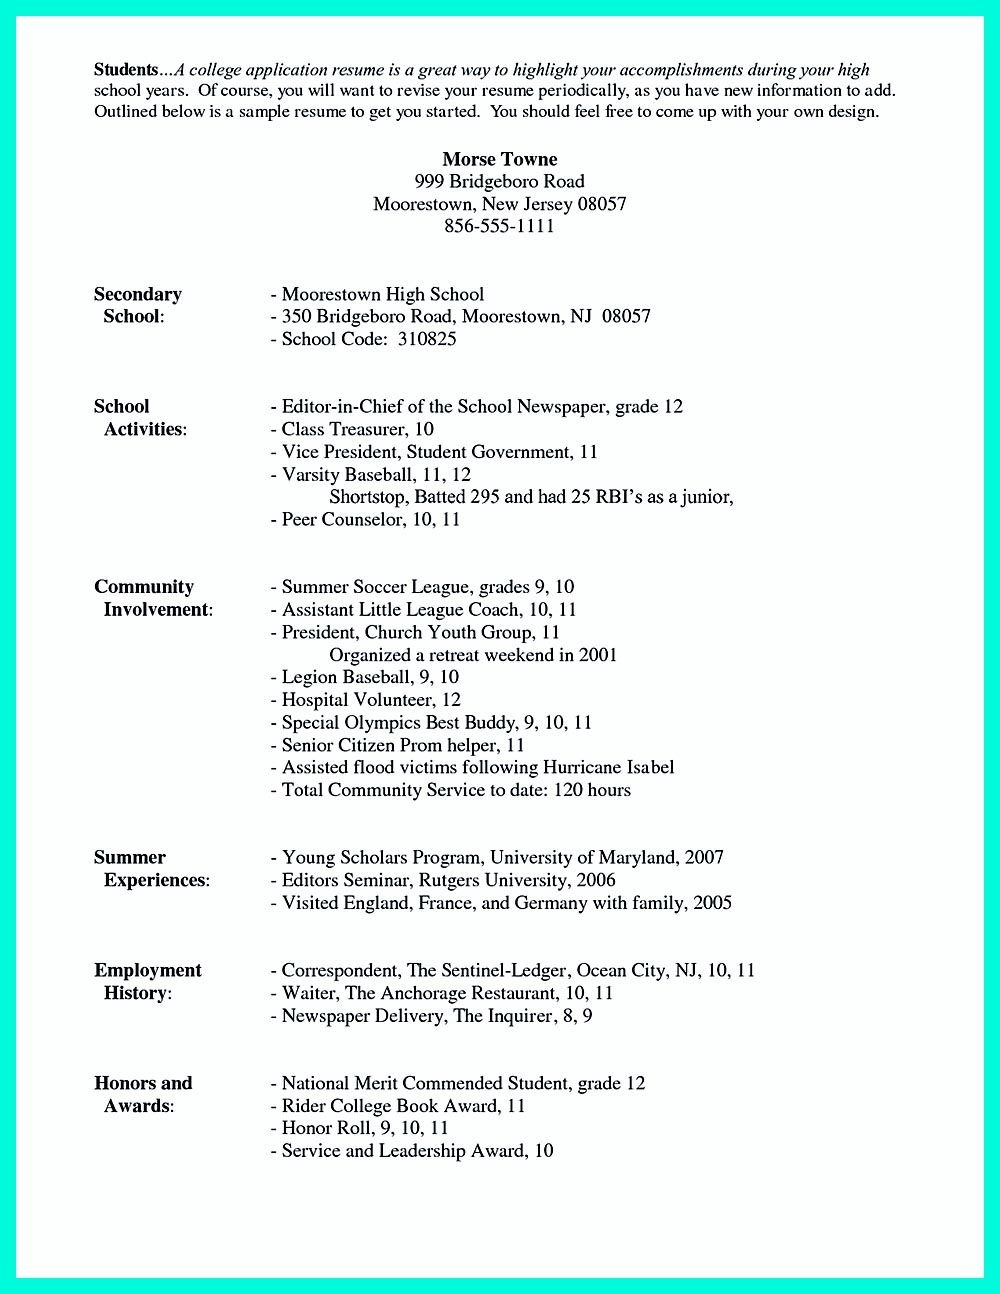 003 Awful College Admission Resume Template Sample  Templates App Application Microsoft WordFull